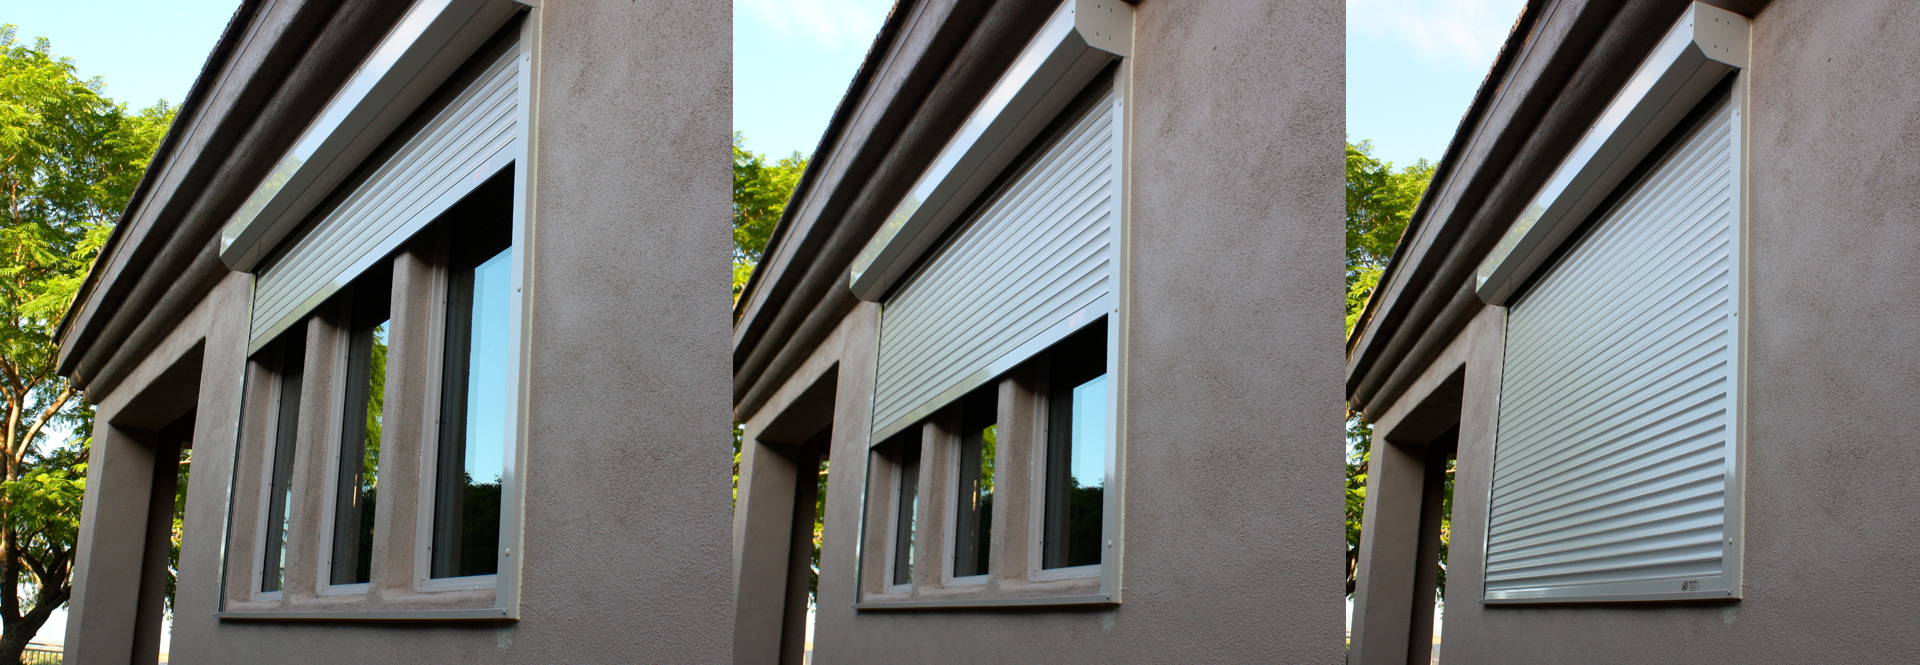 Rolling Shutter Security Shutters Window Coverings